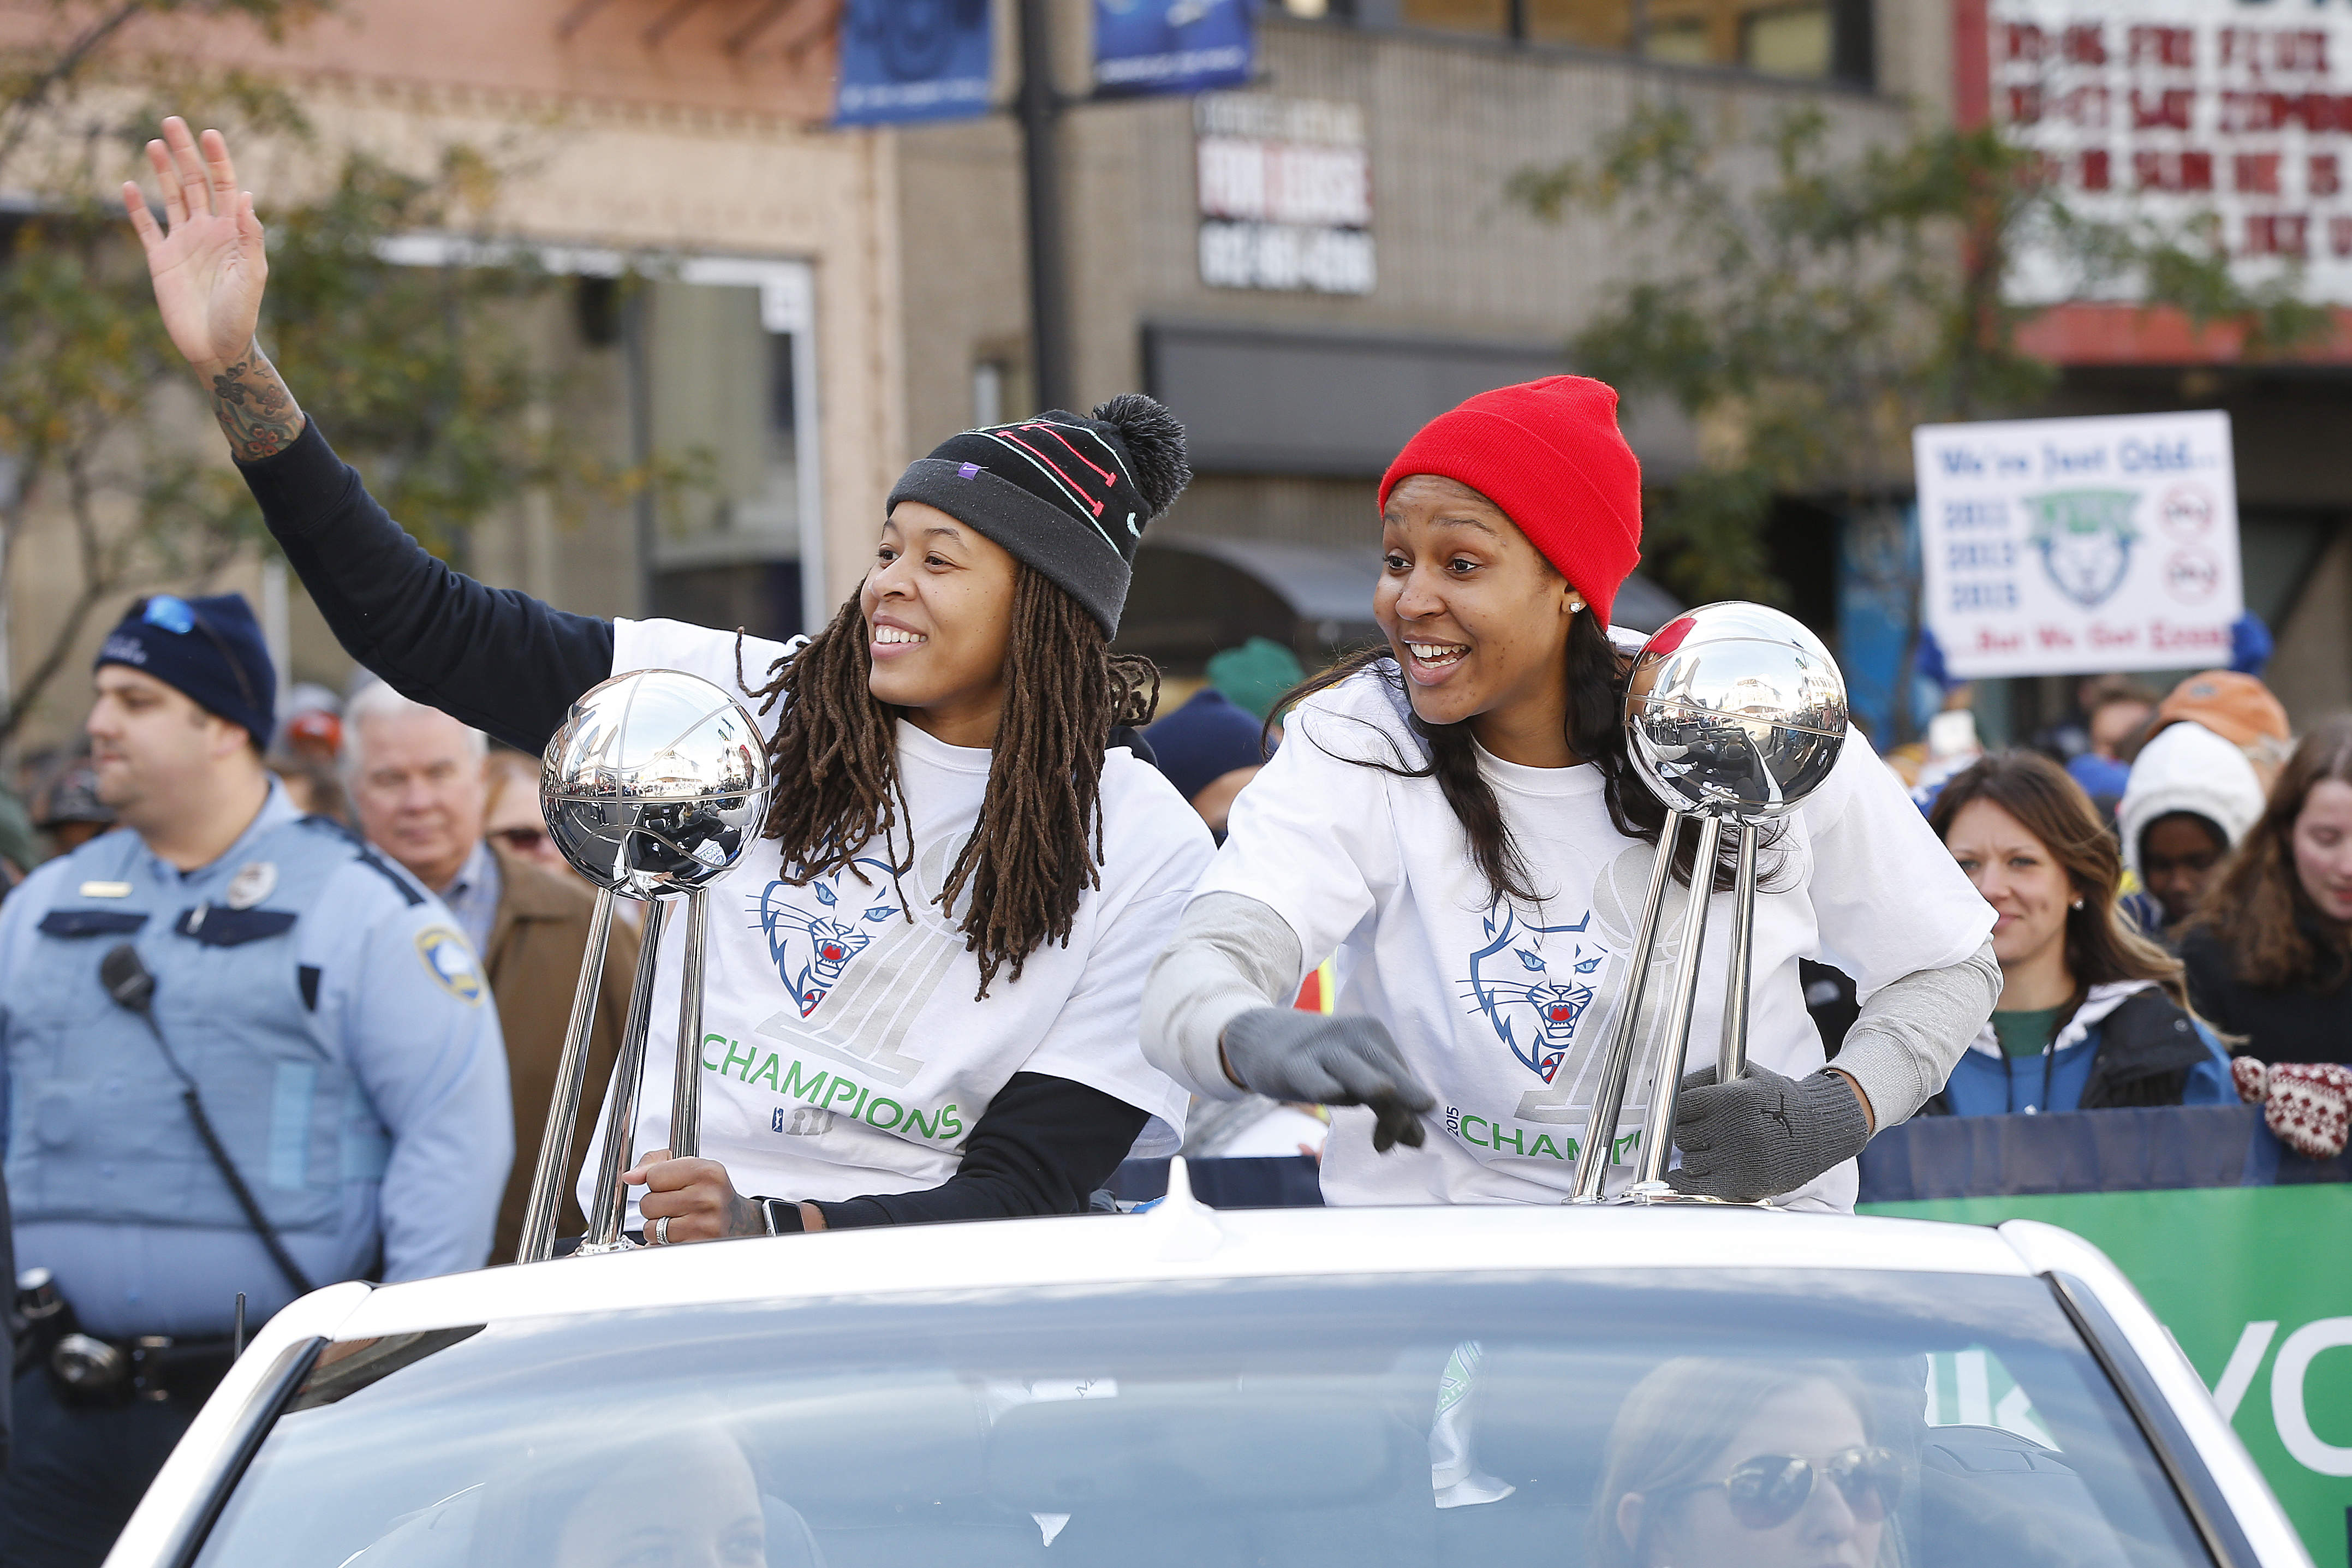 Minnesota Lynx basketball players Seimone Augustus, (left) and Maya Moore, right, wave to fans during a parade to celebrate the teams WNBA Championship (Photo: Stacy Bengs, Associated Press)